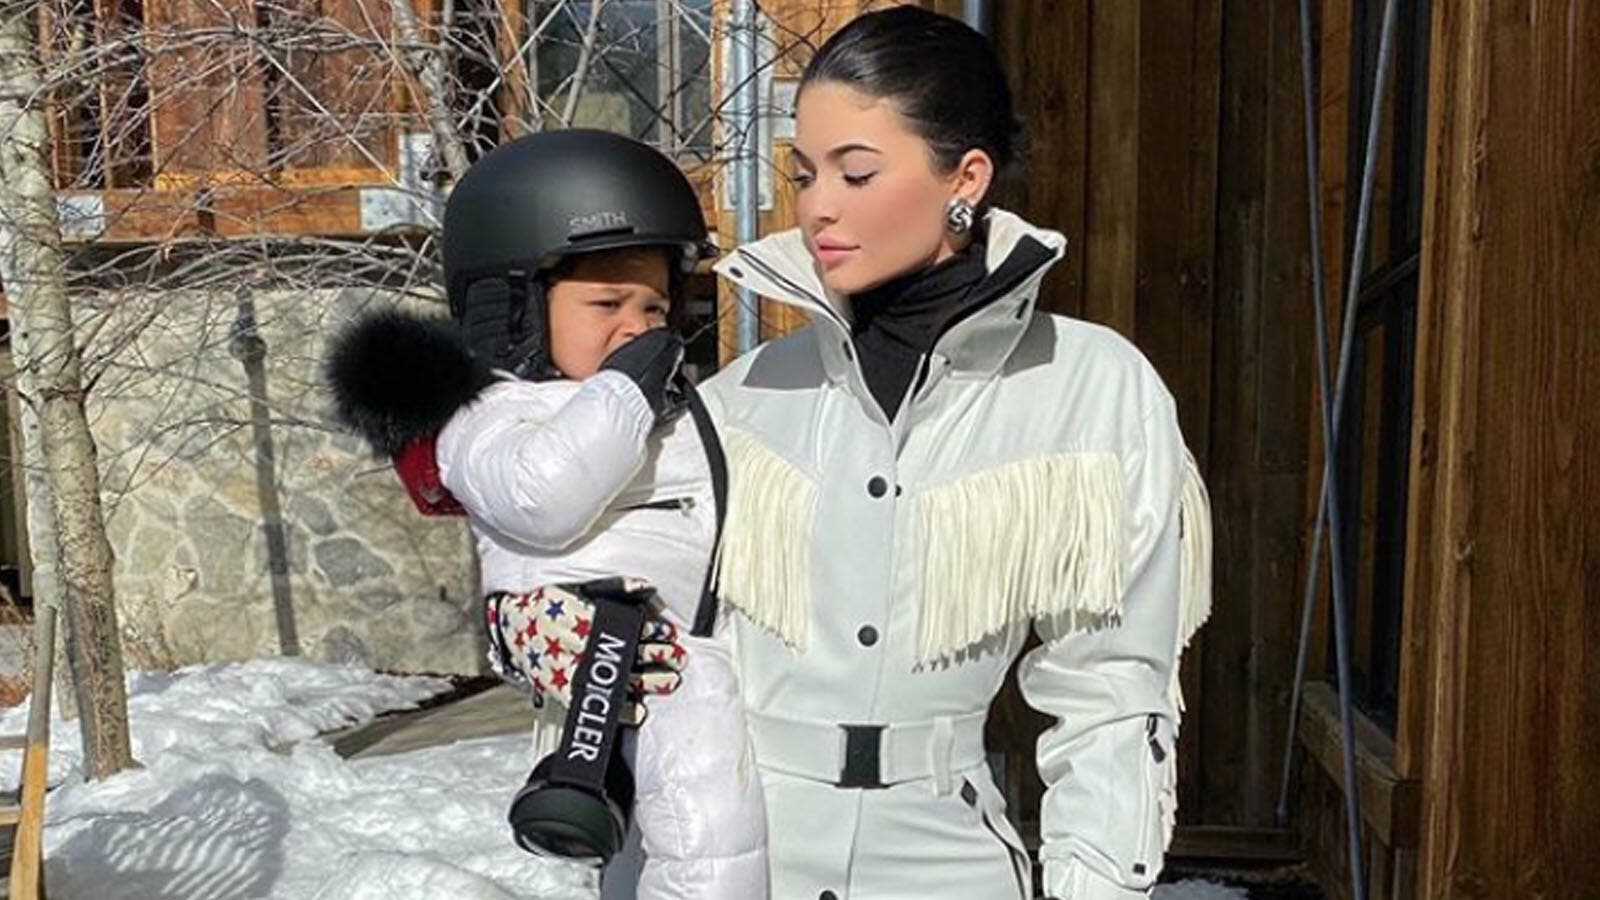 Kylie Jenner's daughter Stormi gifted huge life-size playhouse for Christmas